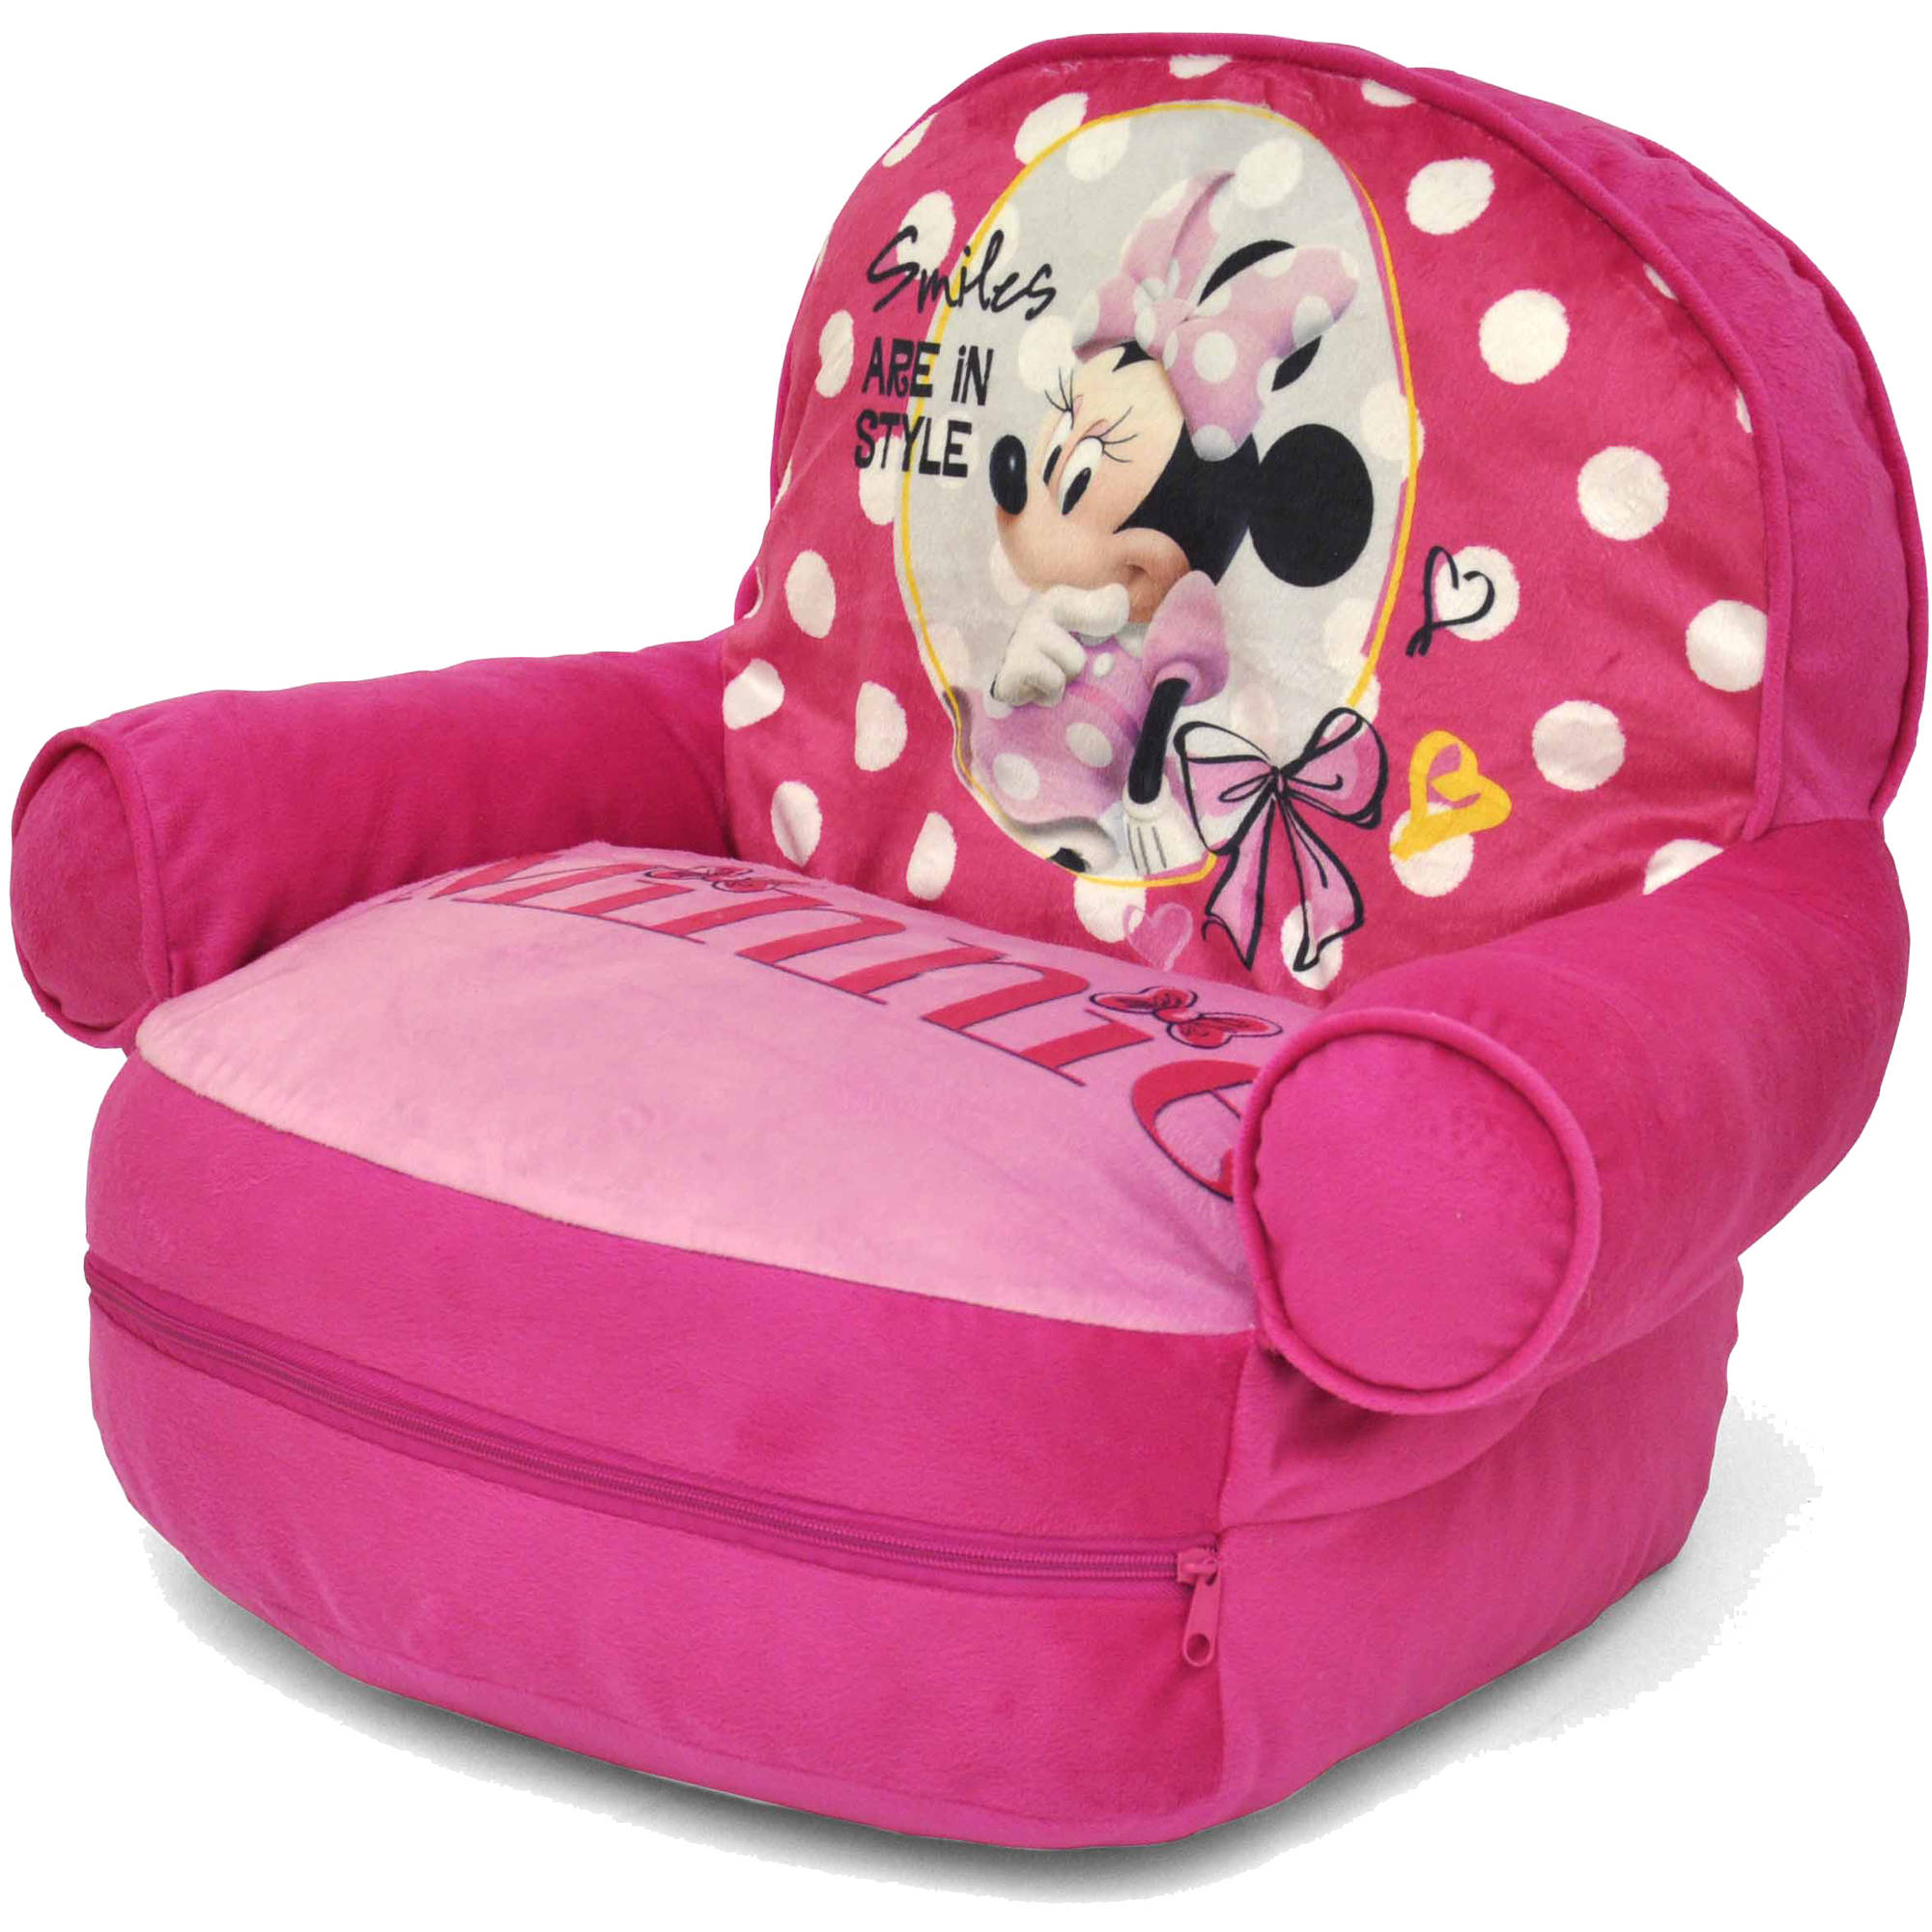 Disney Minnie Mouse  Bean Bag with BONUS Slumber Bag